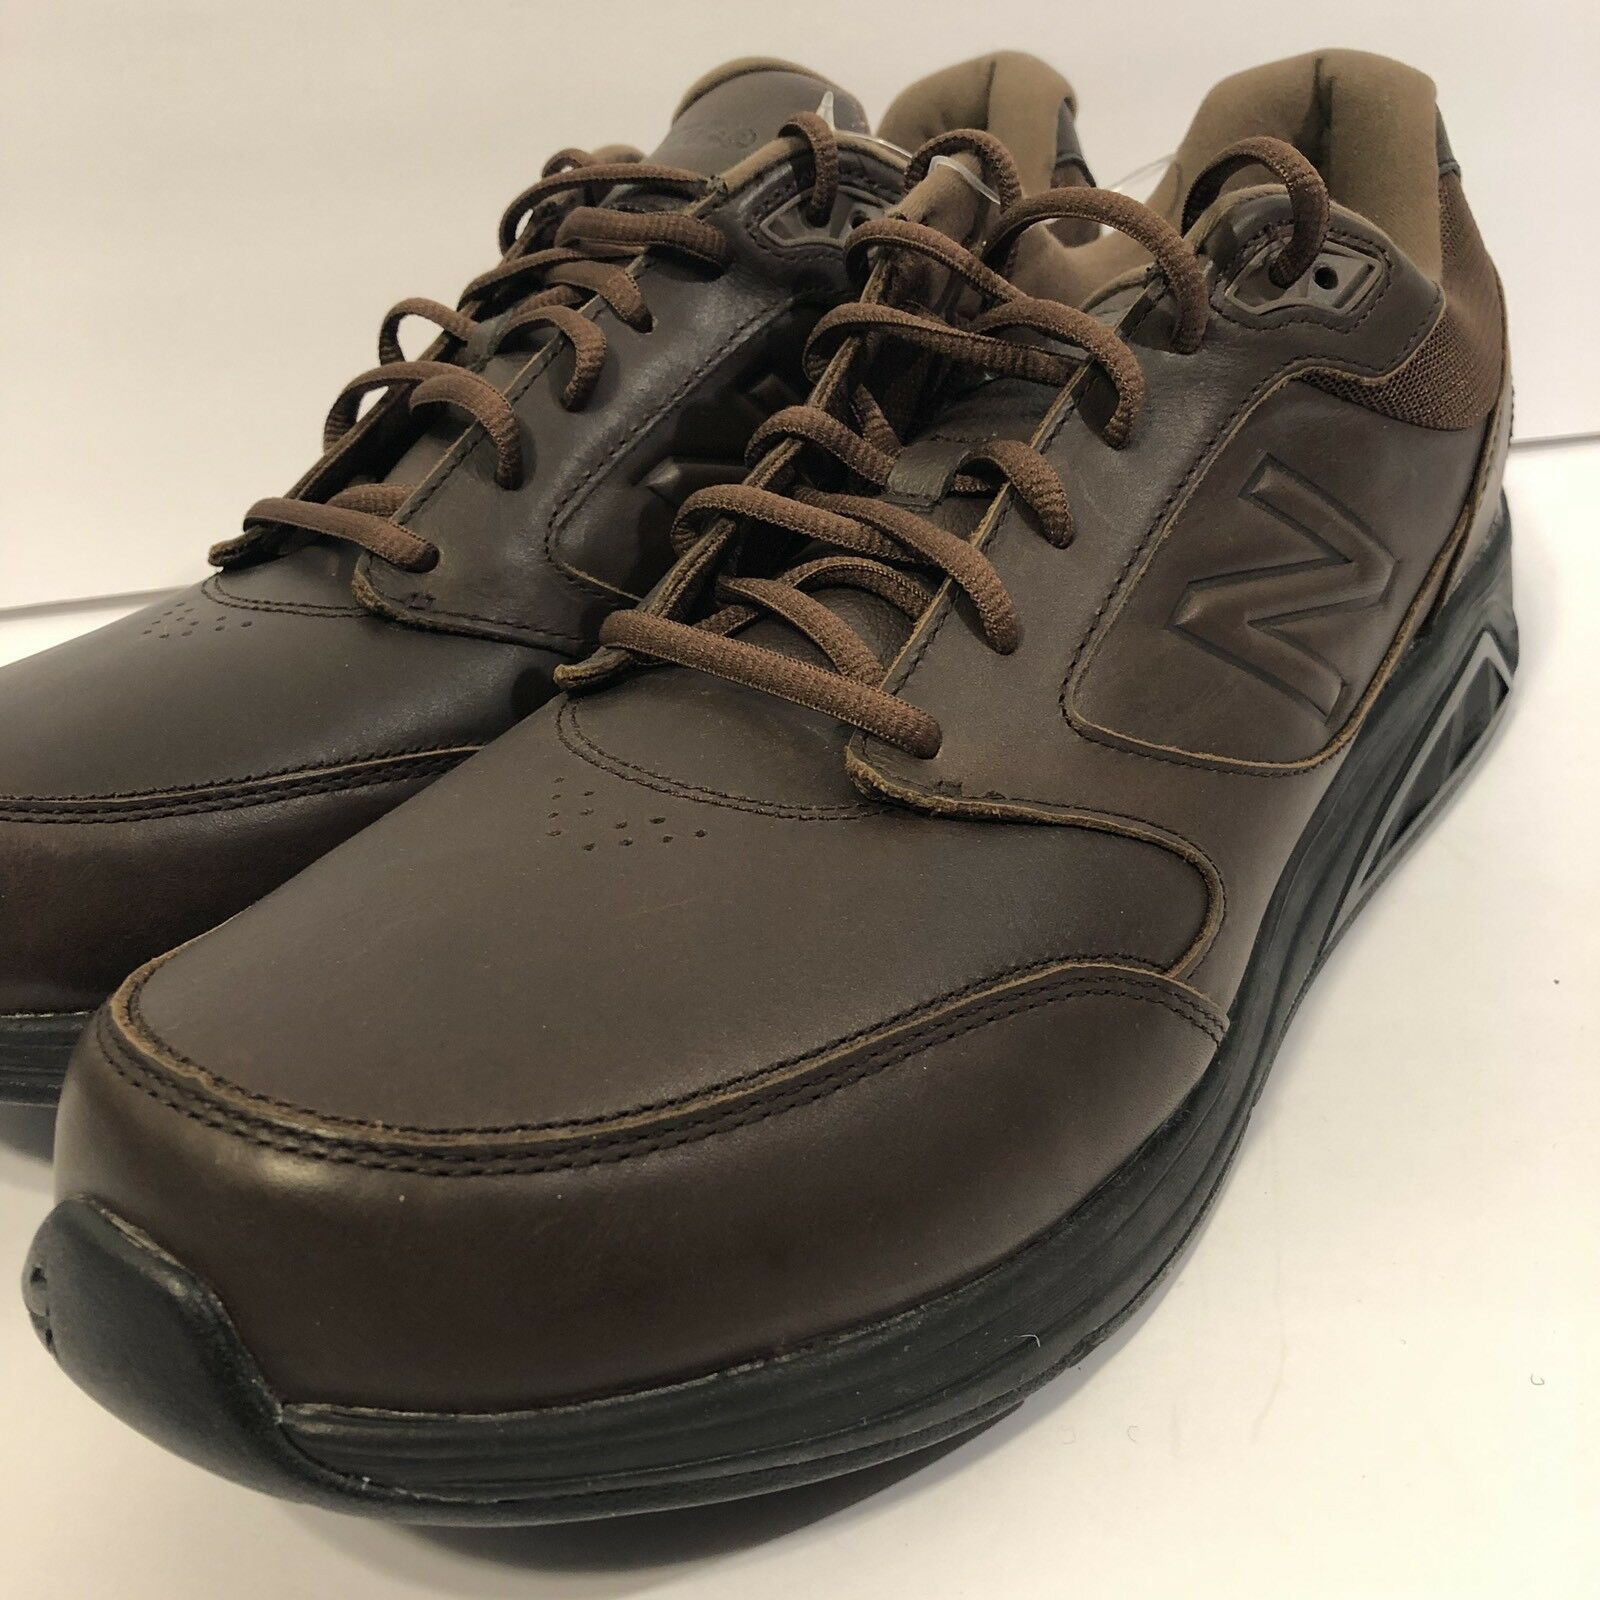 New Balance Men's MW928BR2 Brown Leather Walking shoes 928 sz 14